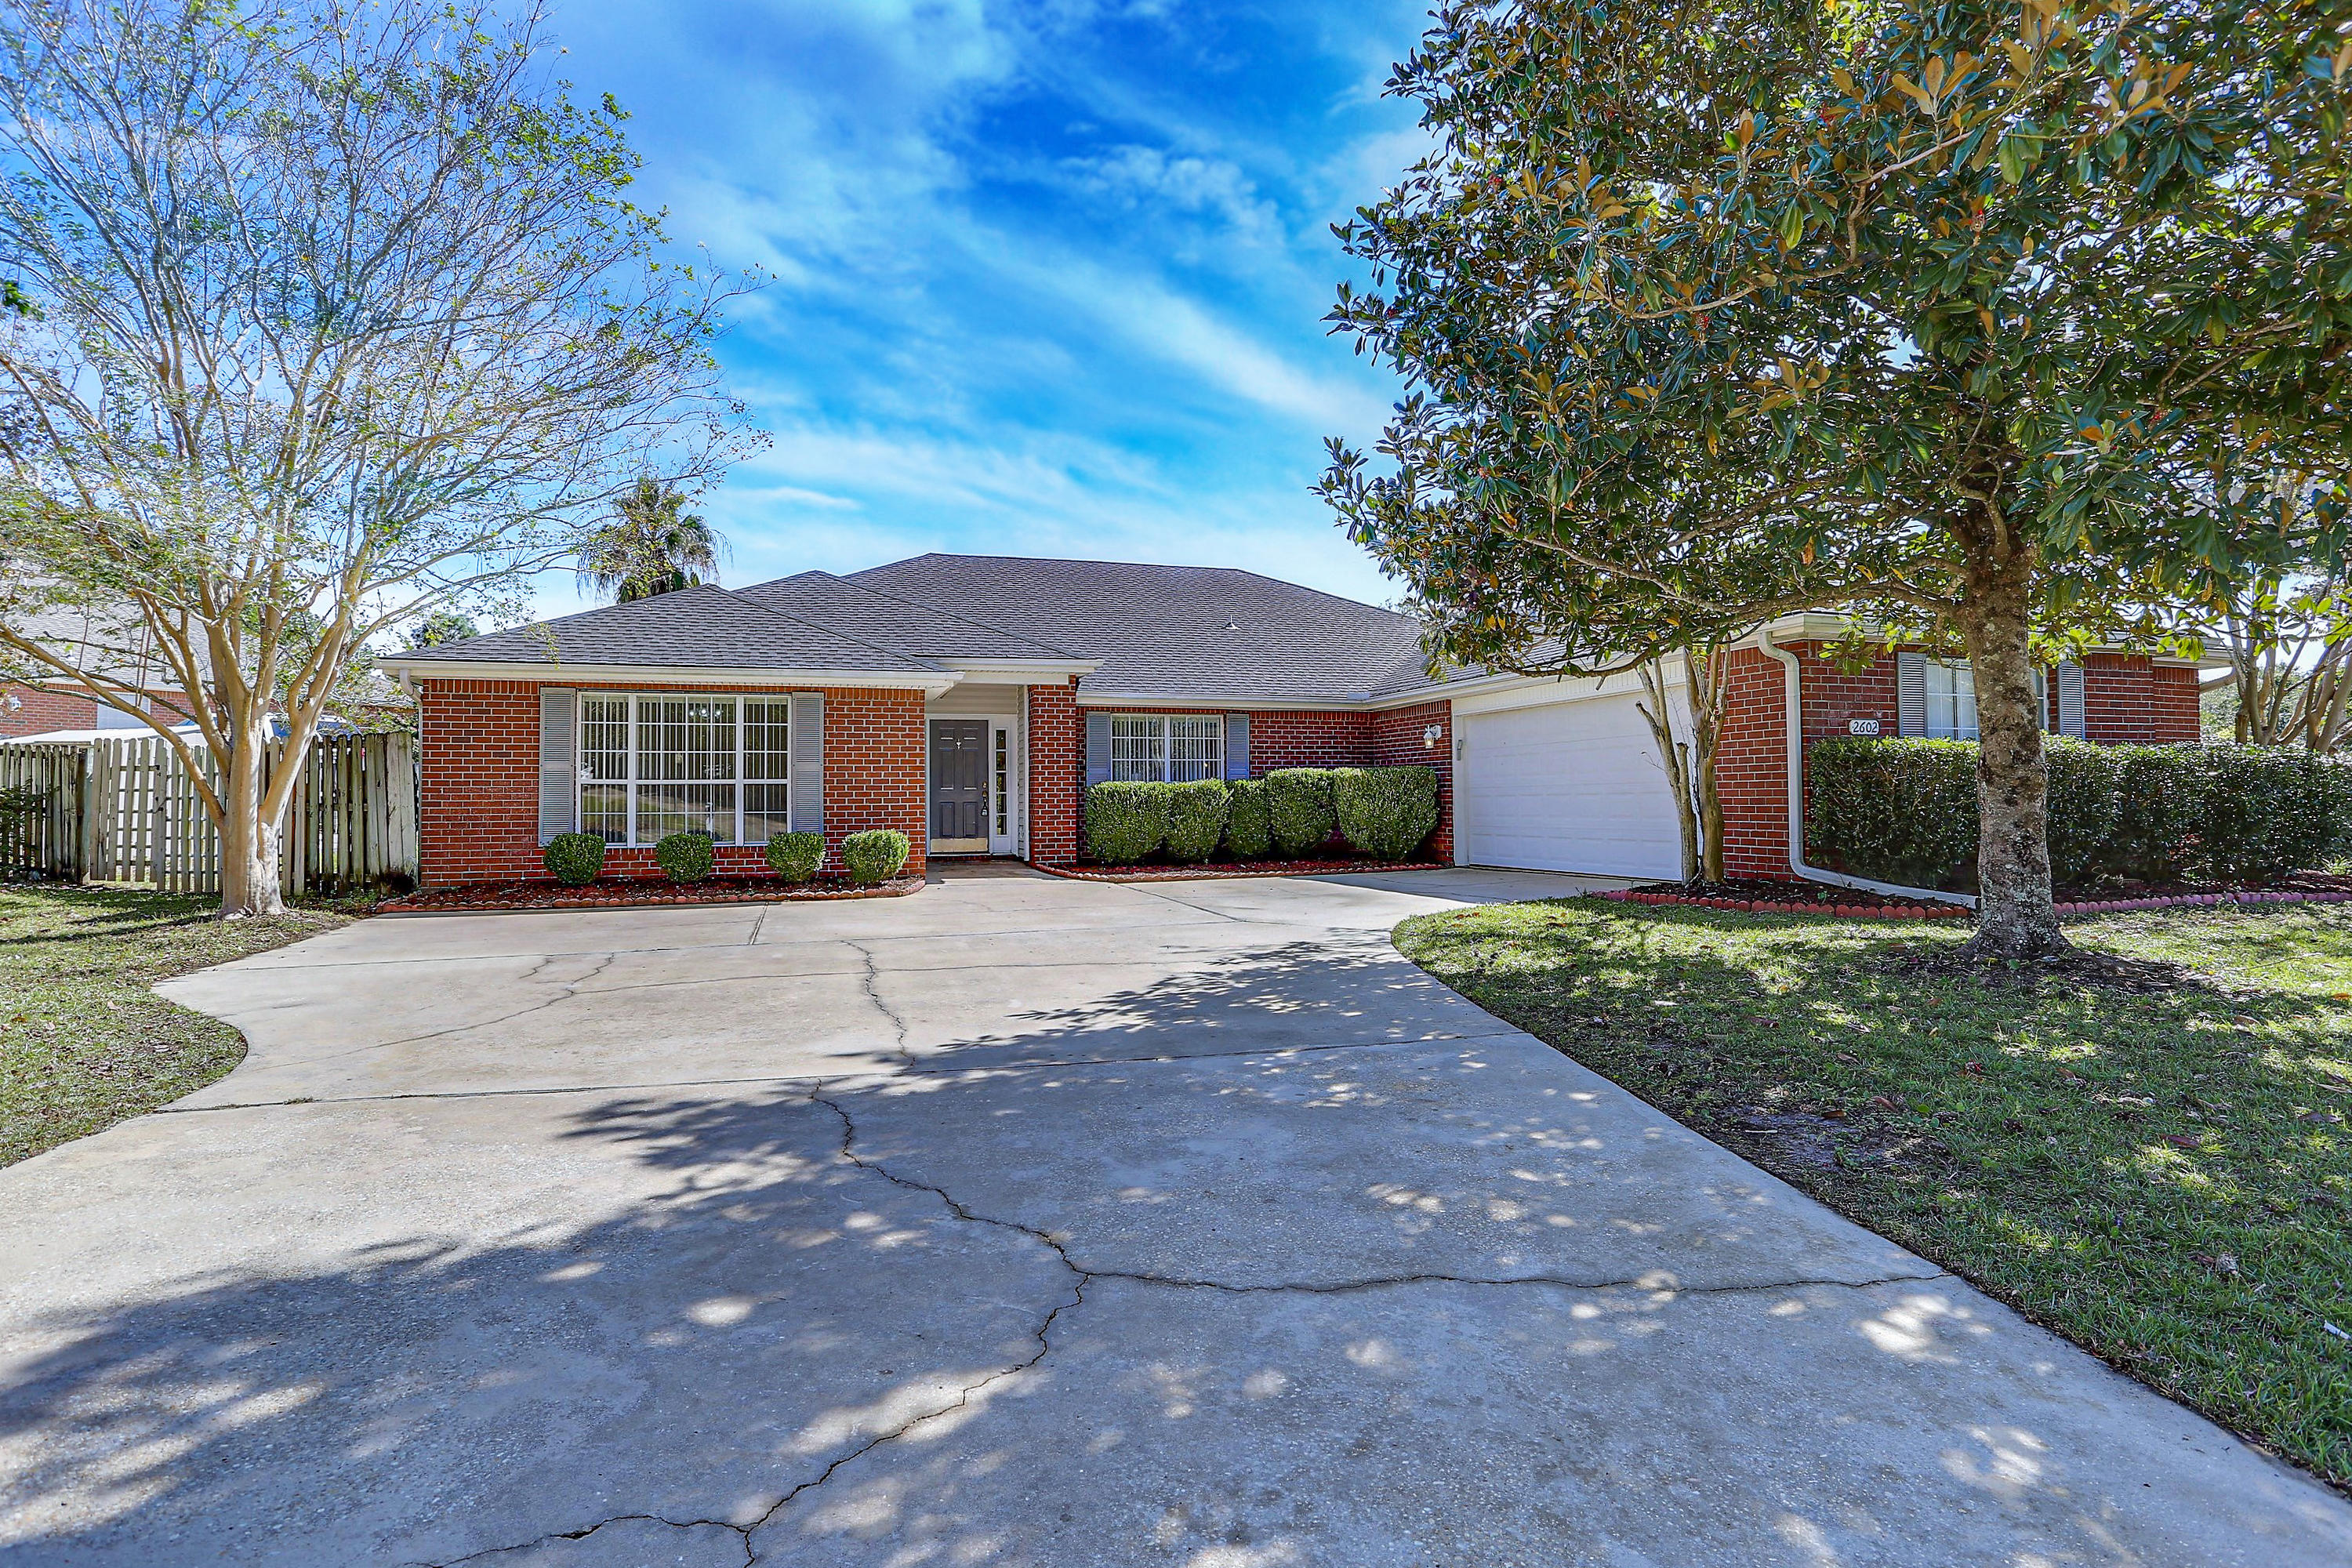 Photo of home for sale at 2602 Pinto, Crestview FL